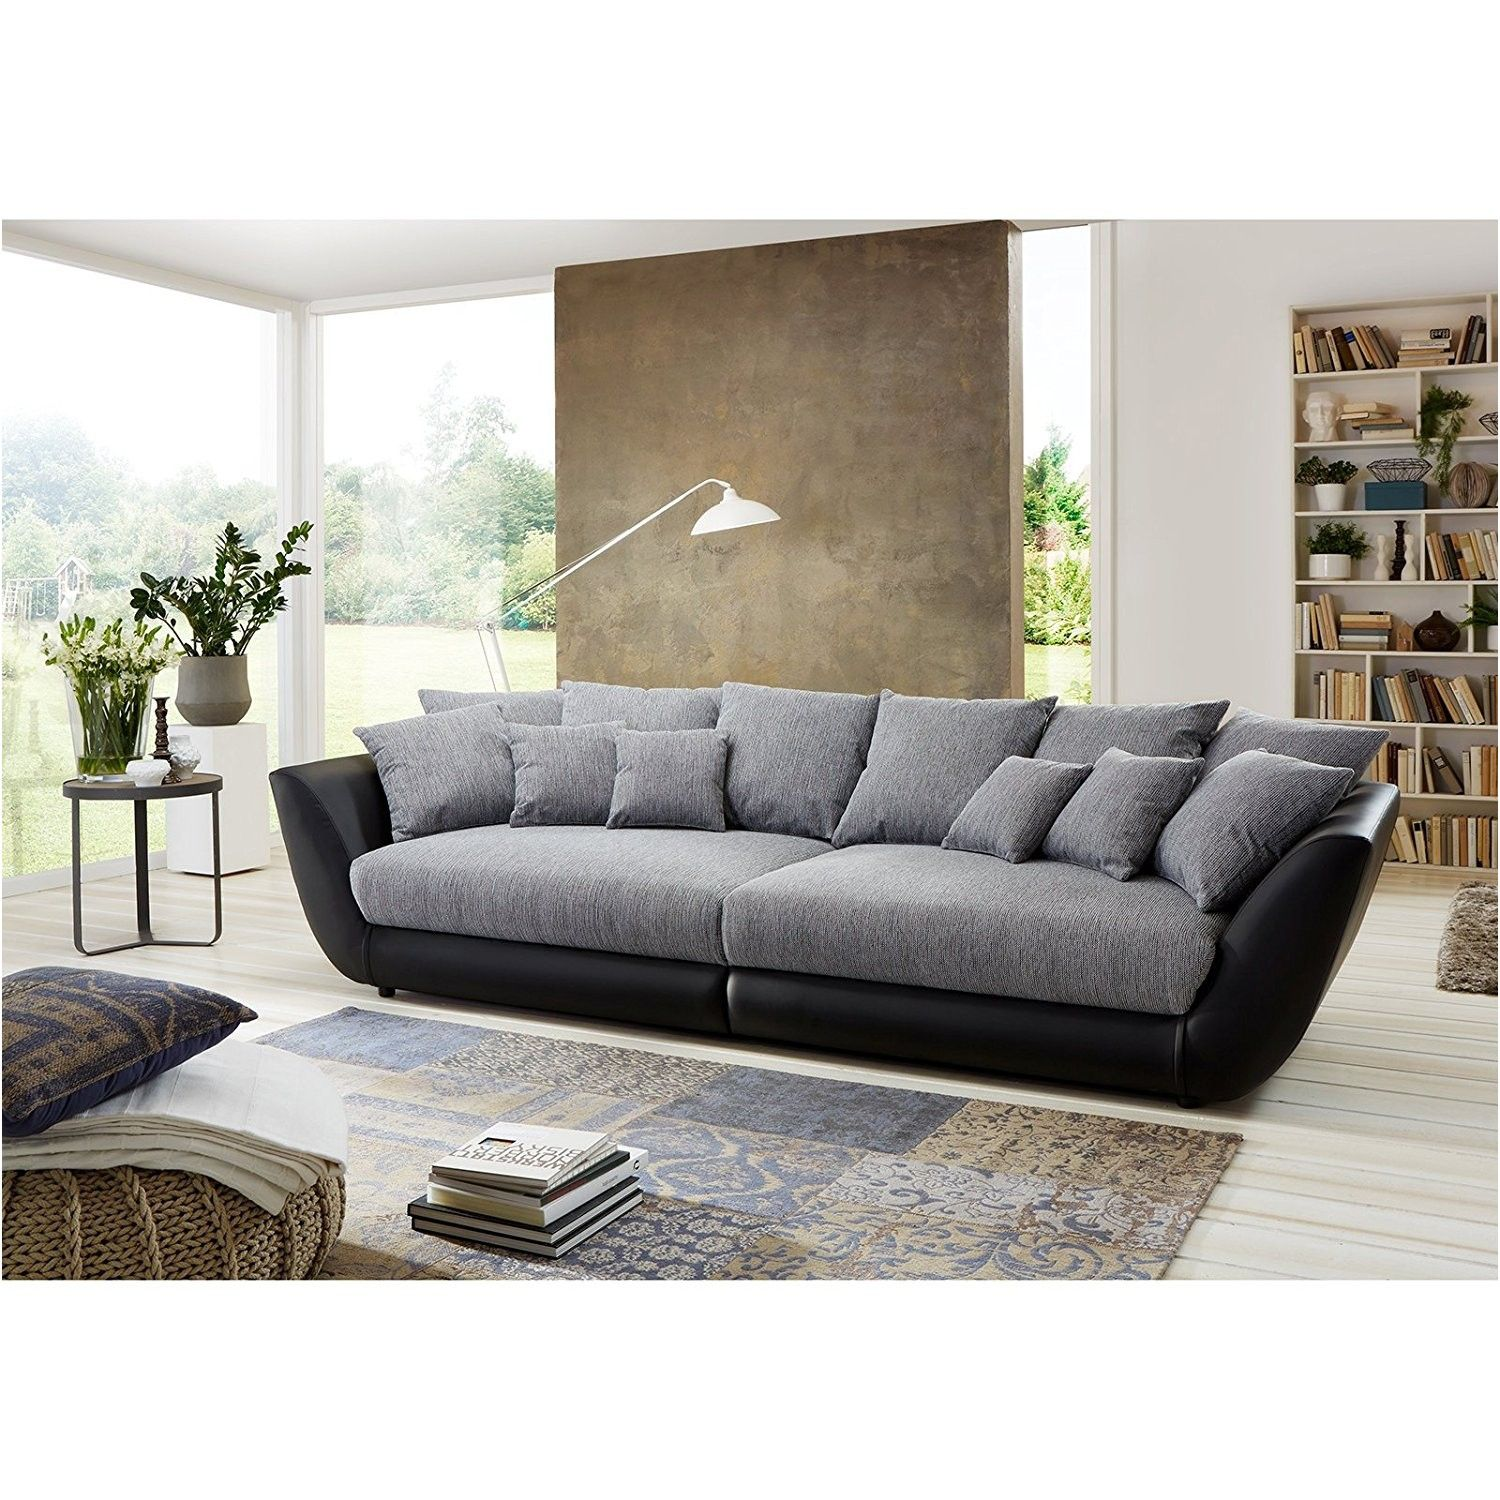 Erfreulich Poco Sofa Mit Schlaffunktion In 2020 Large Living Room Furniture Sectional Sofa With Chaise Living Room Furniture Inspiration